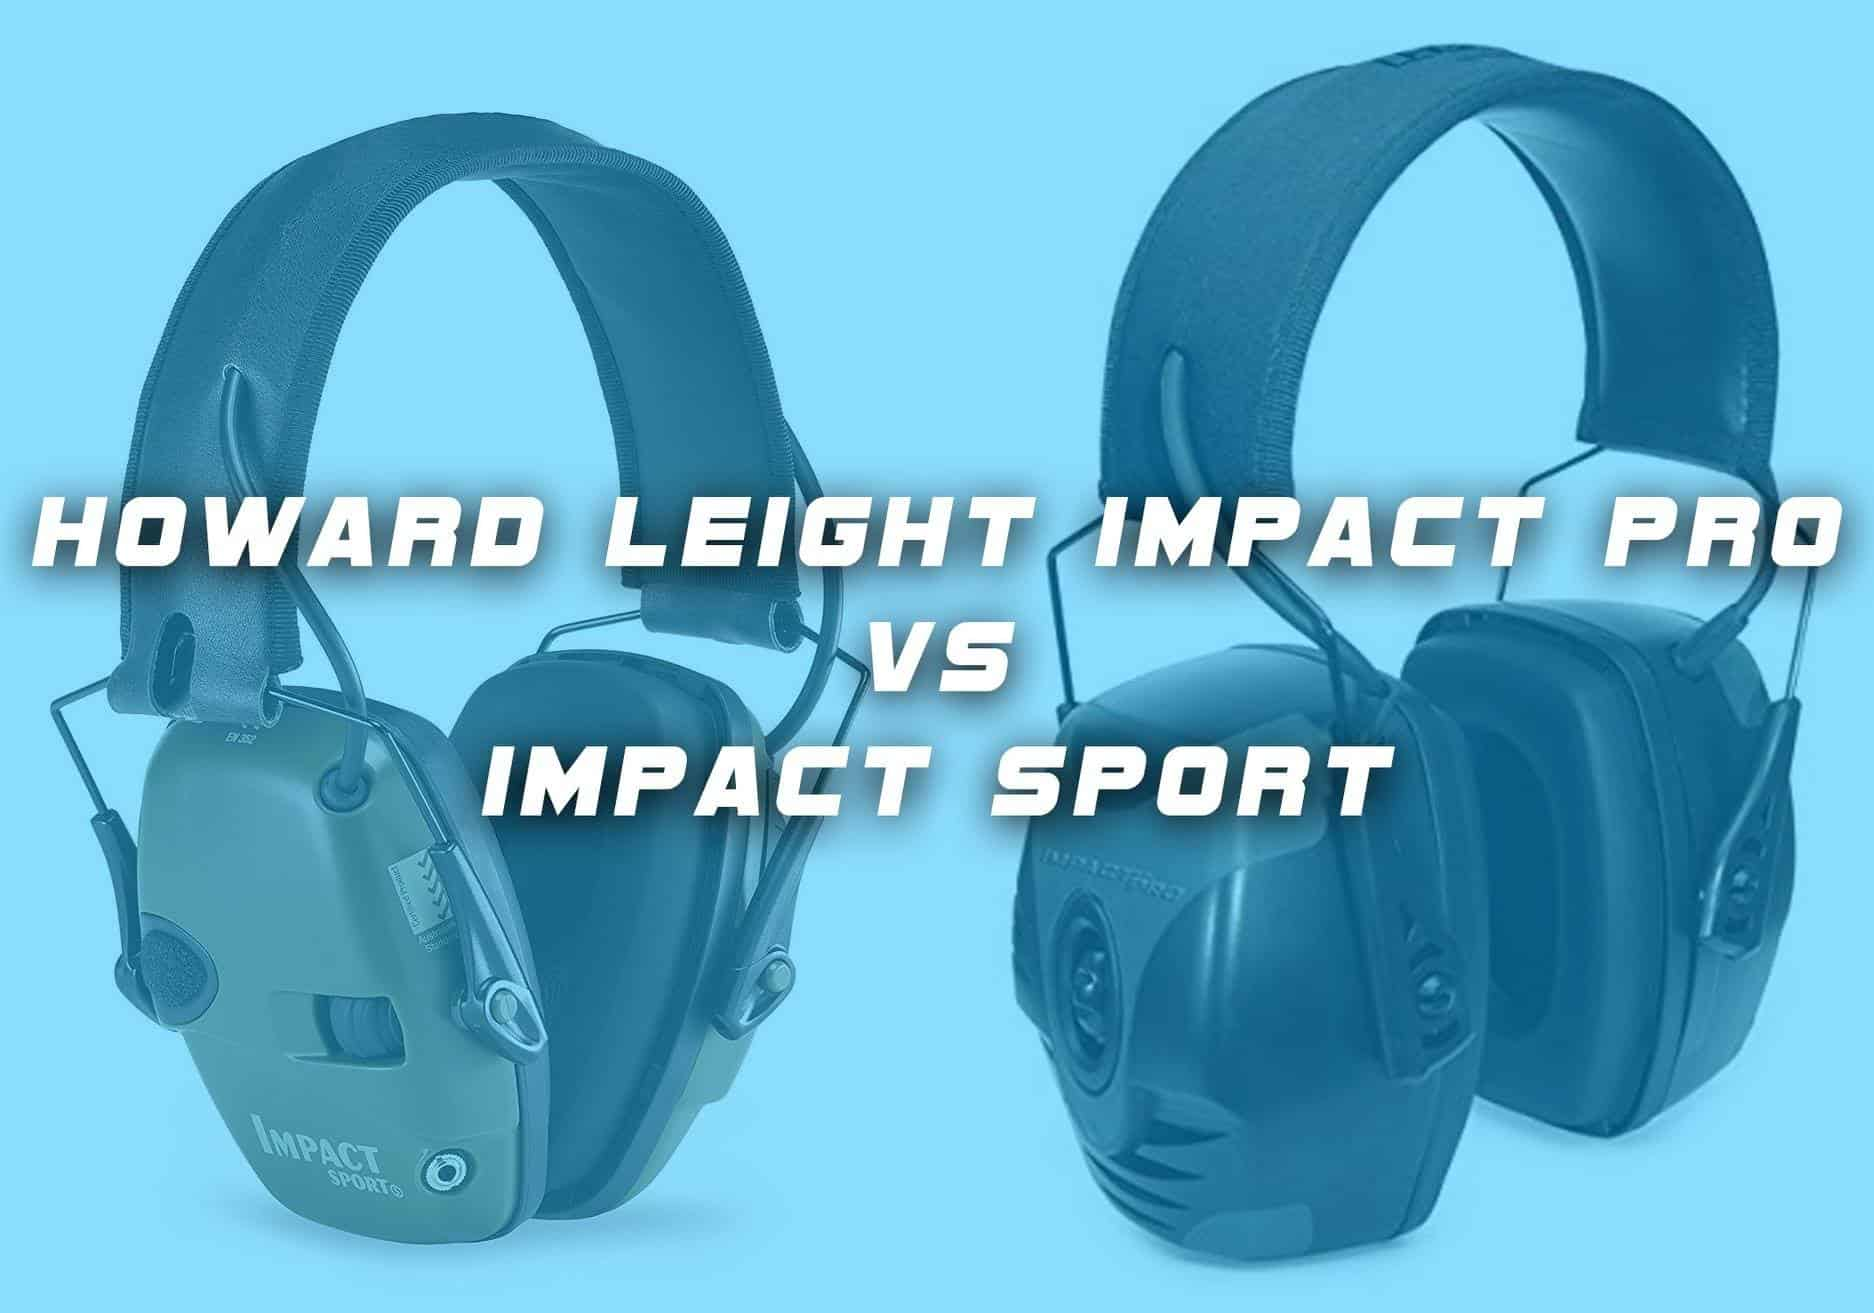 Howard Leight Impact Pro VS Impact Sport